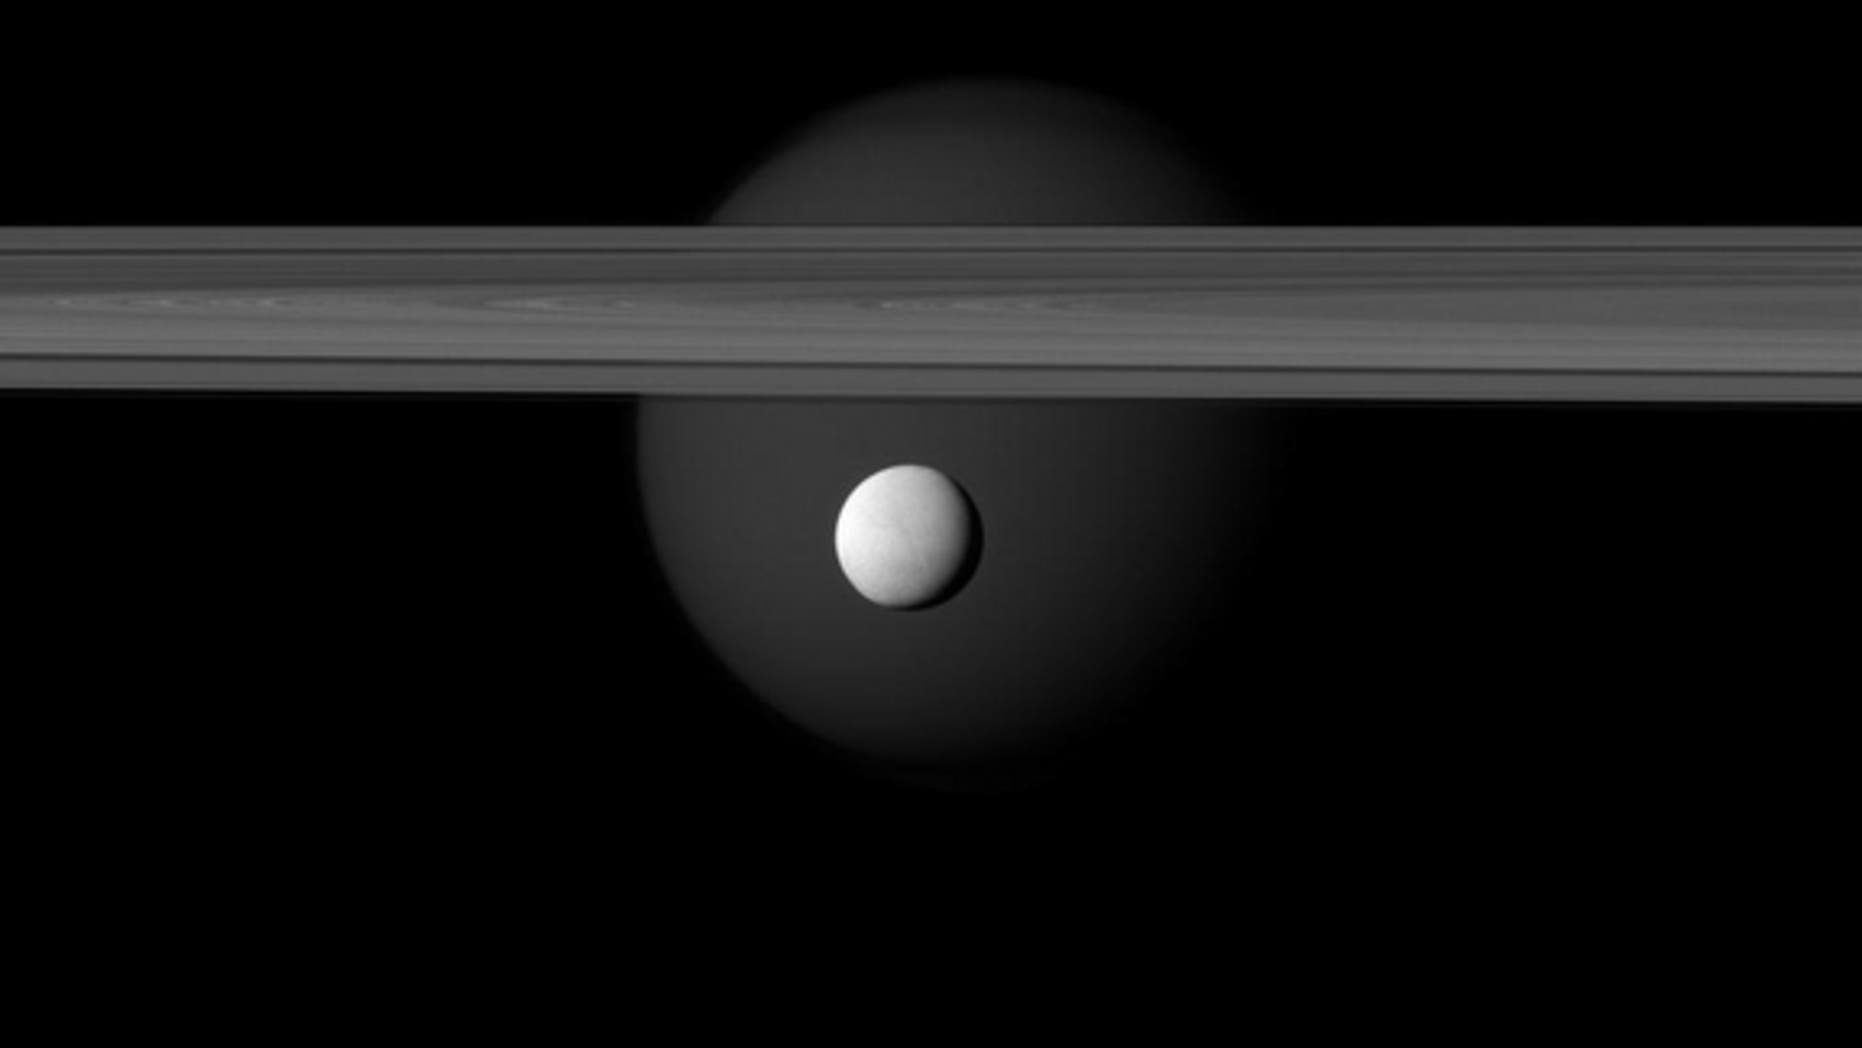 Saturn's icy moon Enceladus hangs below the gas giant's rings while Titan lurks in the background, in this new image taken by the Cassini spacecraft on March 12, 2012.